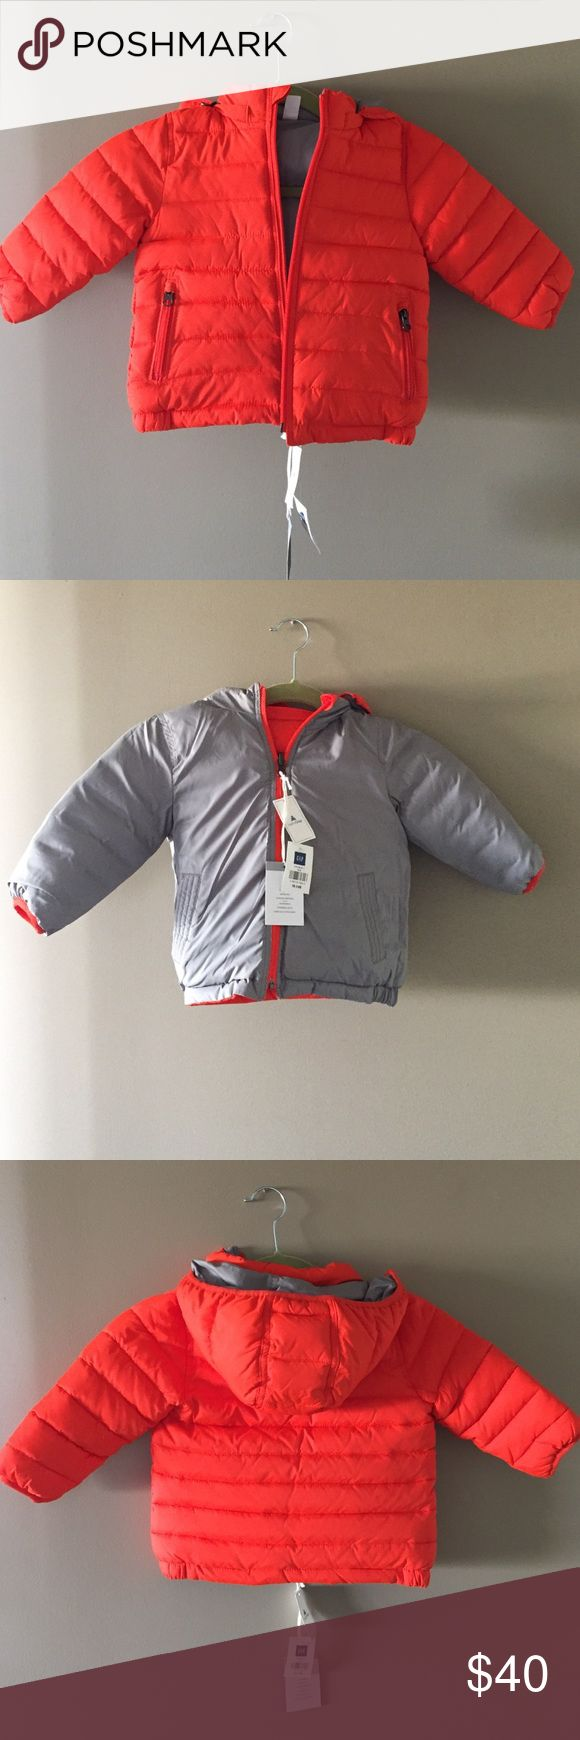 Orange baby gap reversible puffer jacket Two coats in one!!! Keep your little one warm in this puffer coat! Never been worn. New with tags. GAP Jackets & Coats Puffers